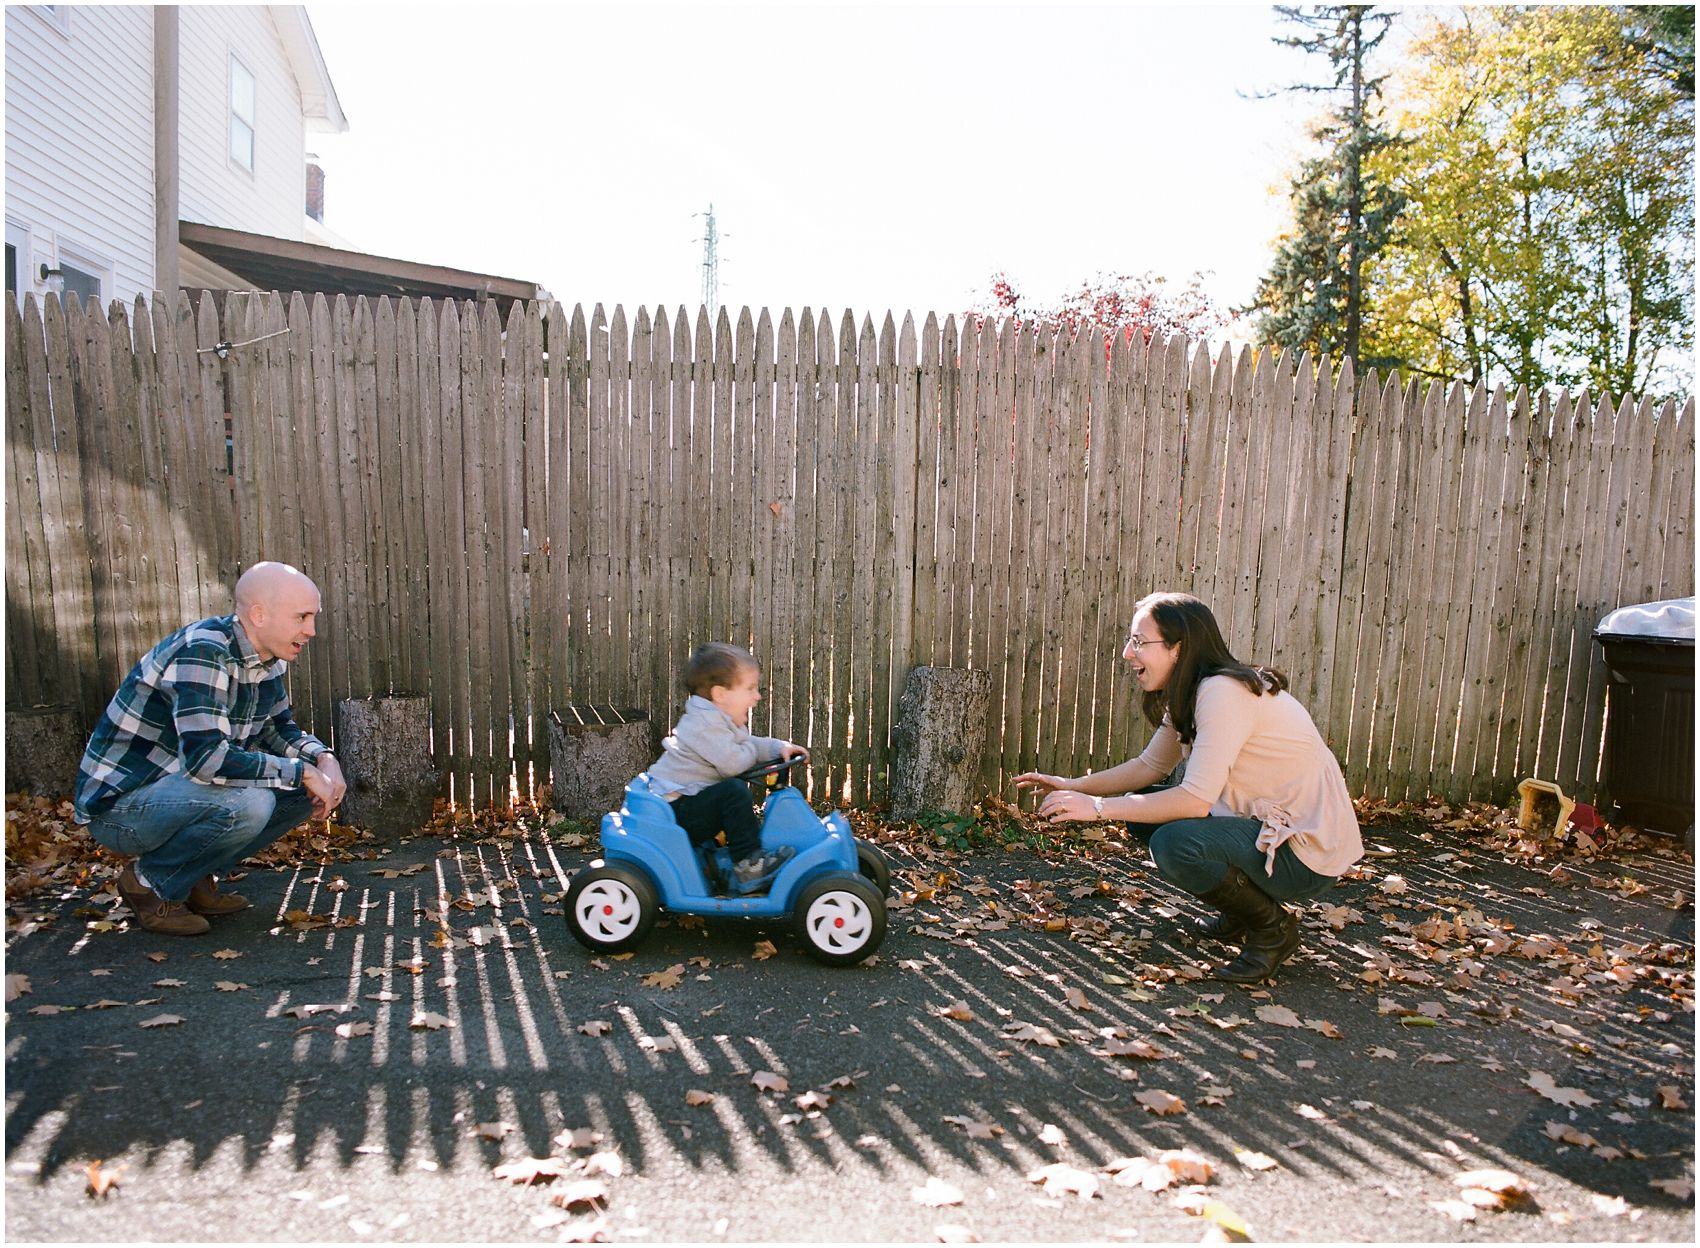 fun family photo of a little boy riding a blue car from mom to dad in front of the fence in NY